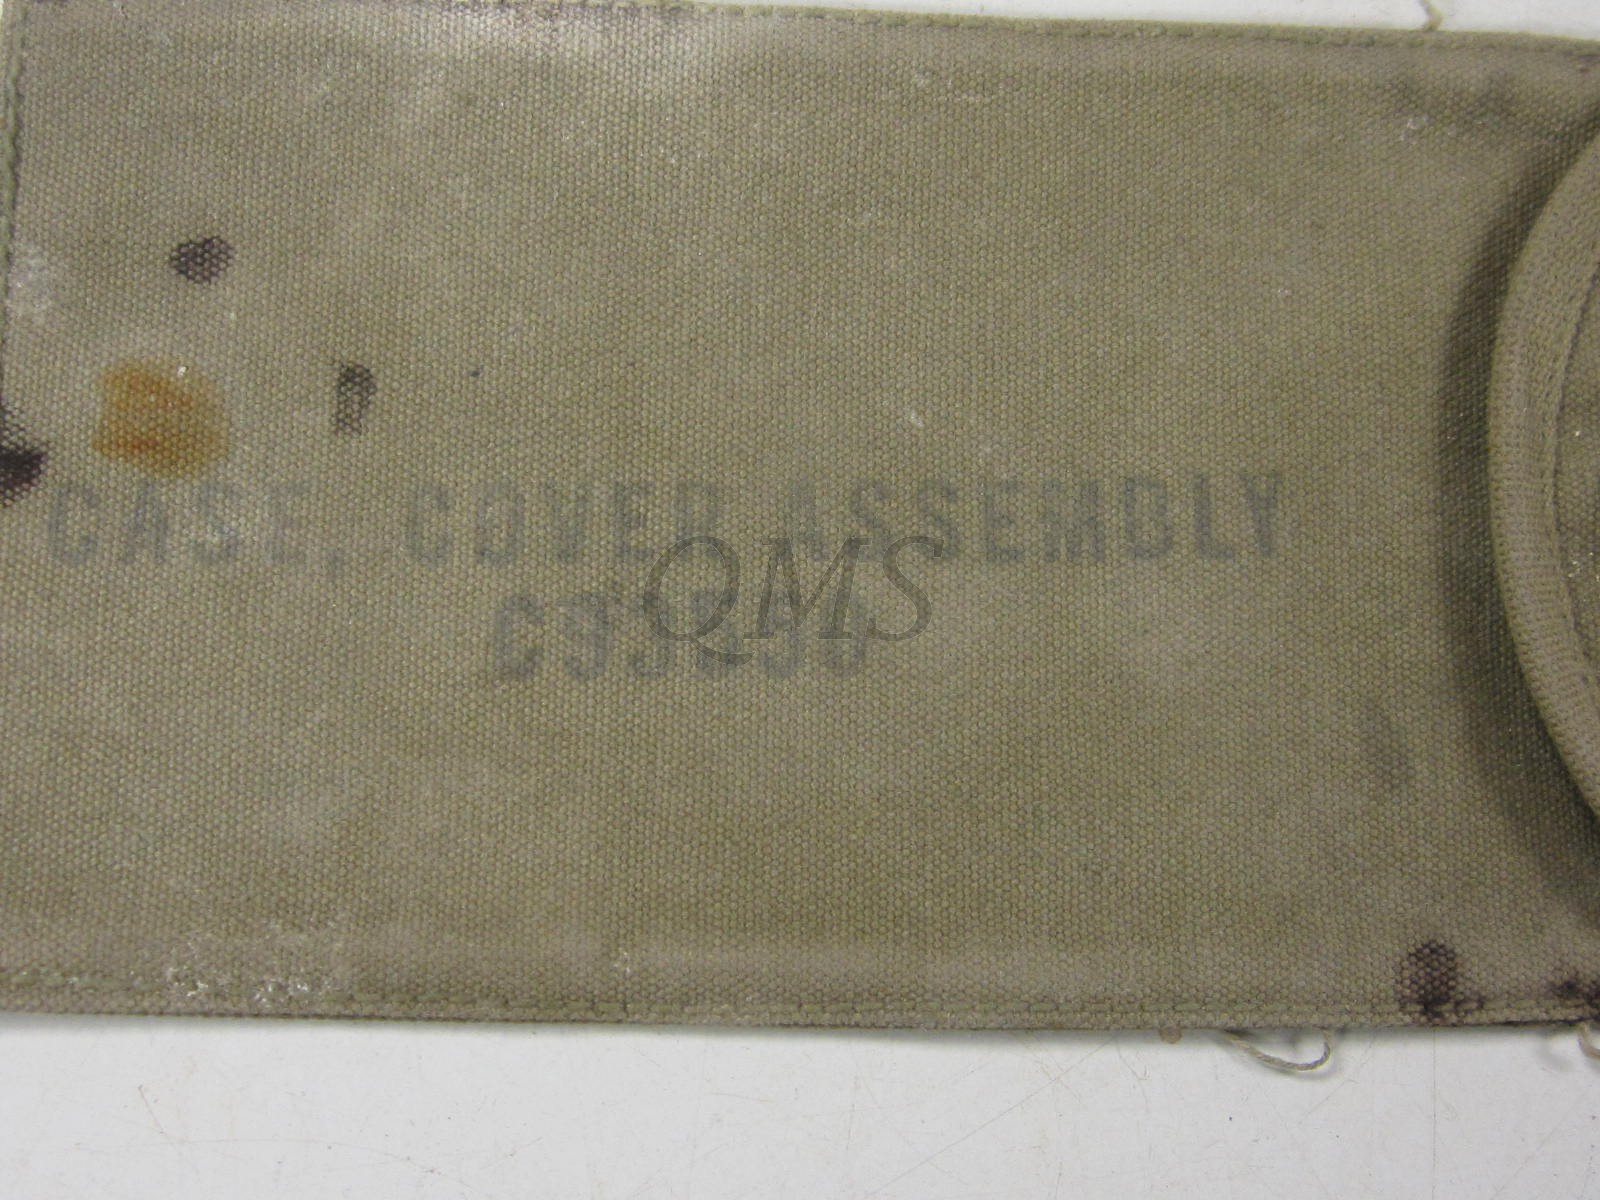 US Army Case cover assembly C93550